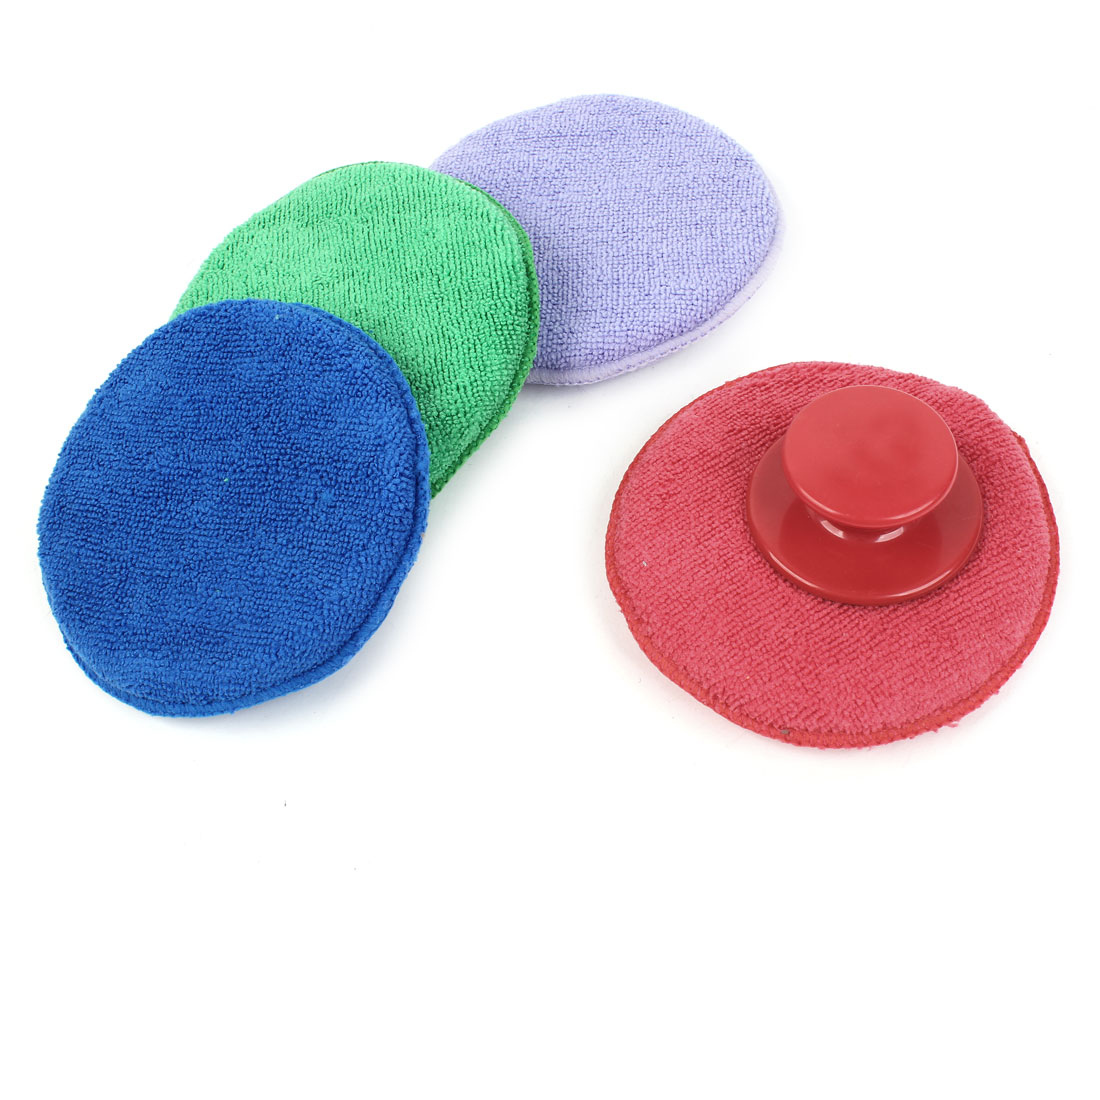 4 Pcs 13cm Dia Round Fleece Sponge Polishing Wheel for Auto Car